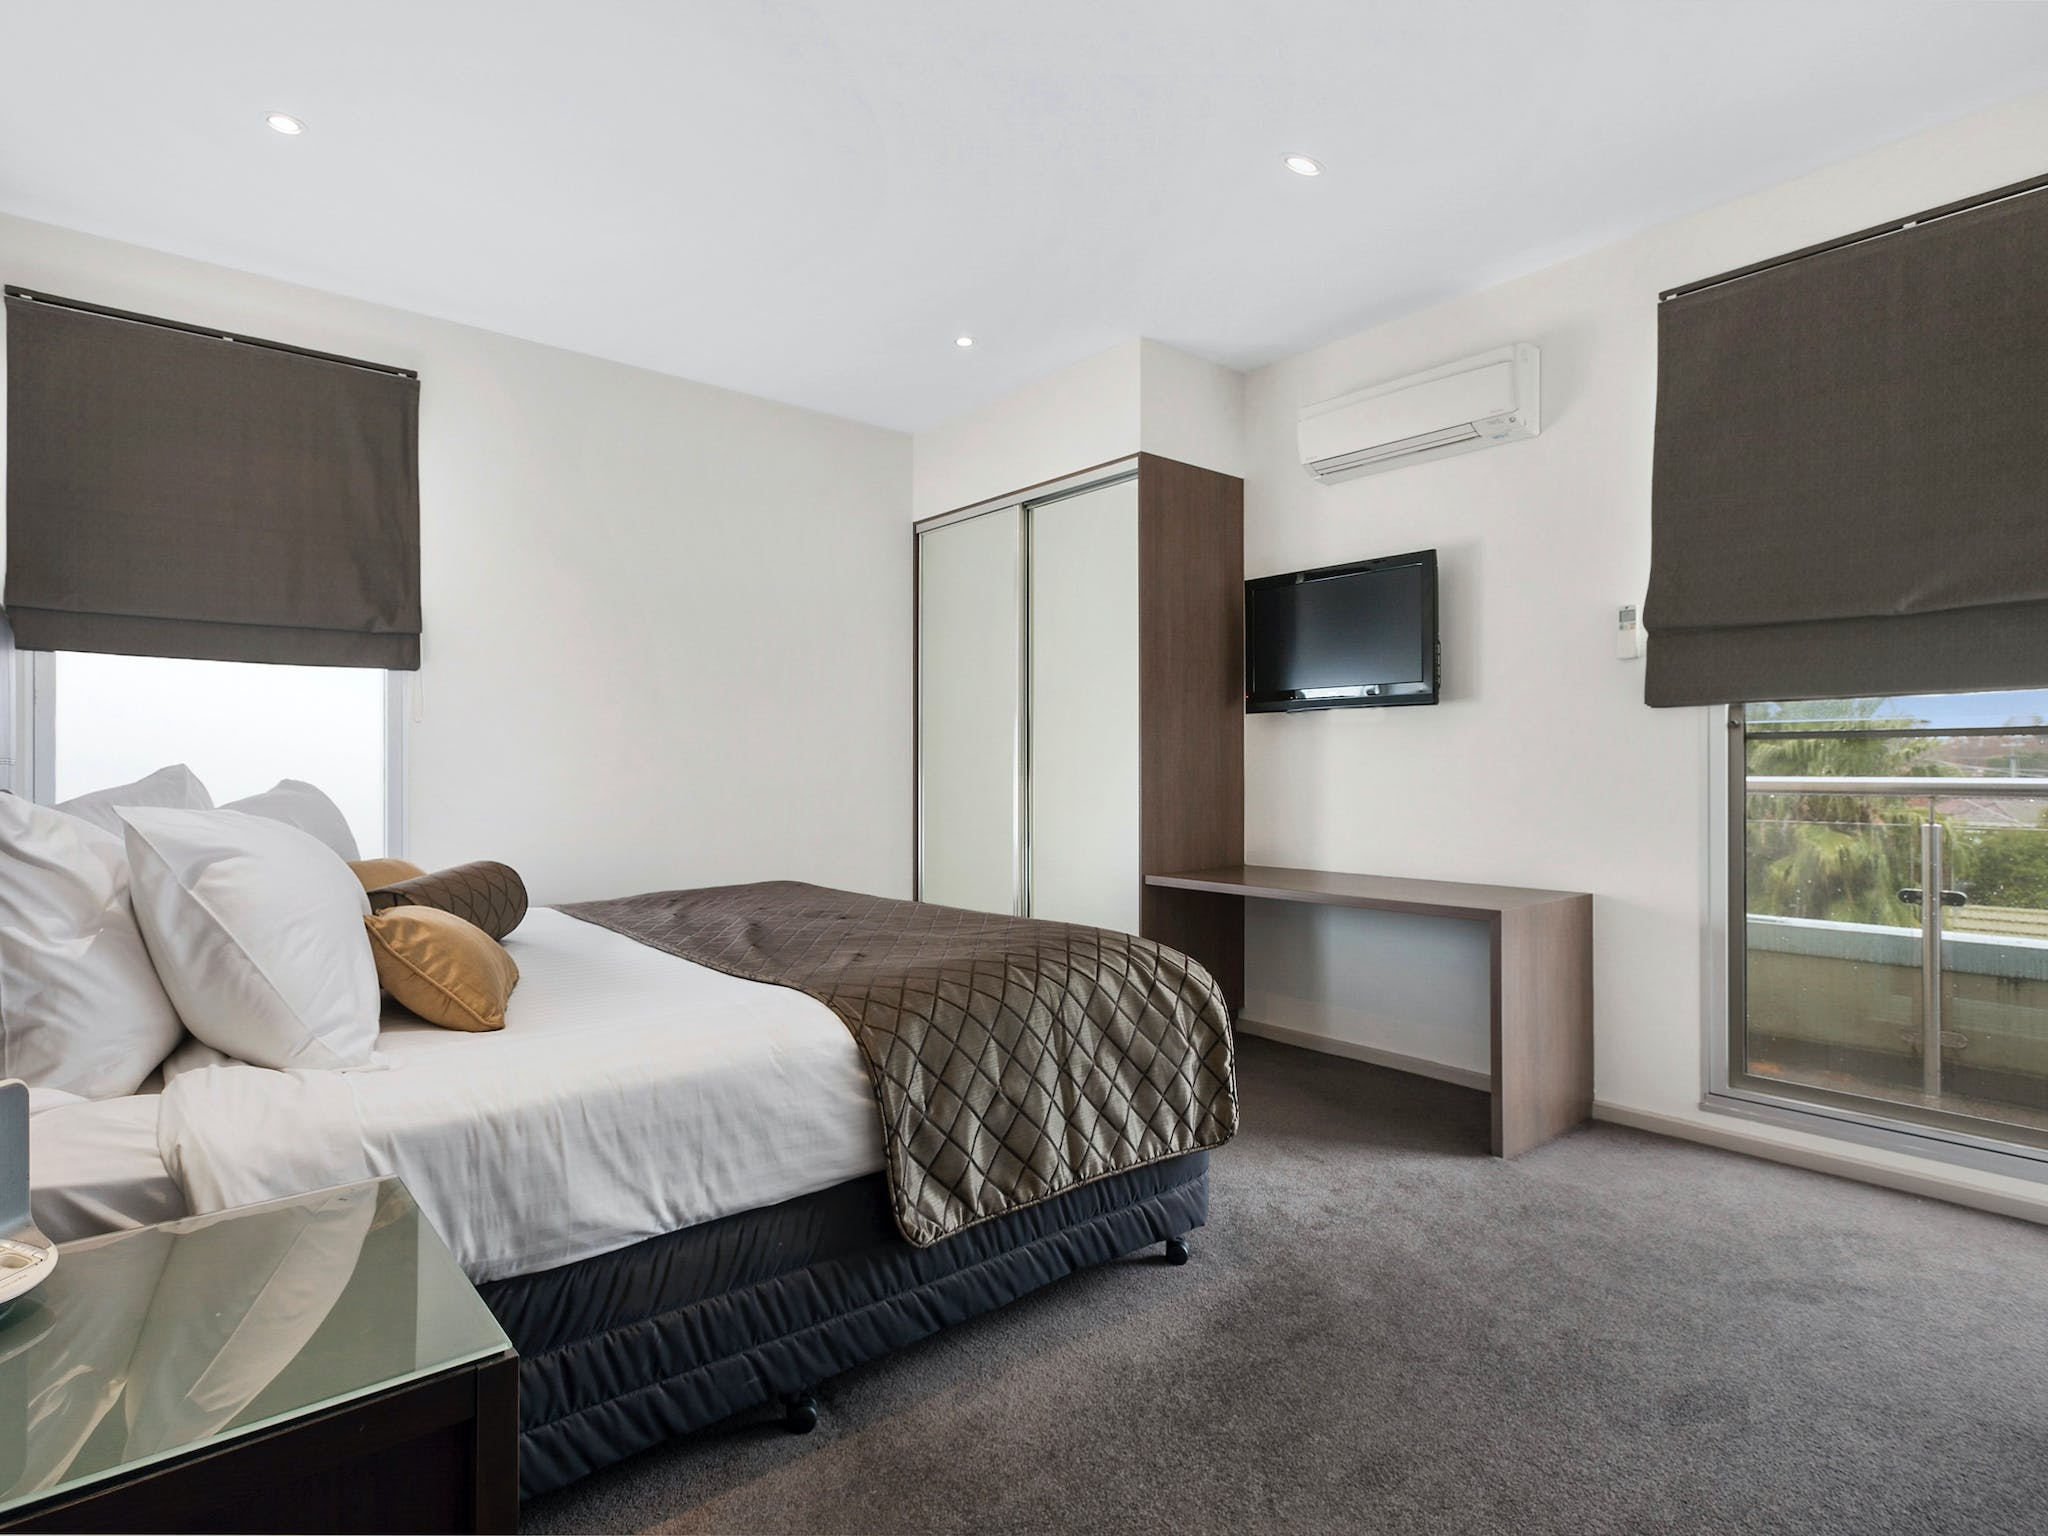 Master bedroom with wardrobe, flat screen television and window